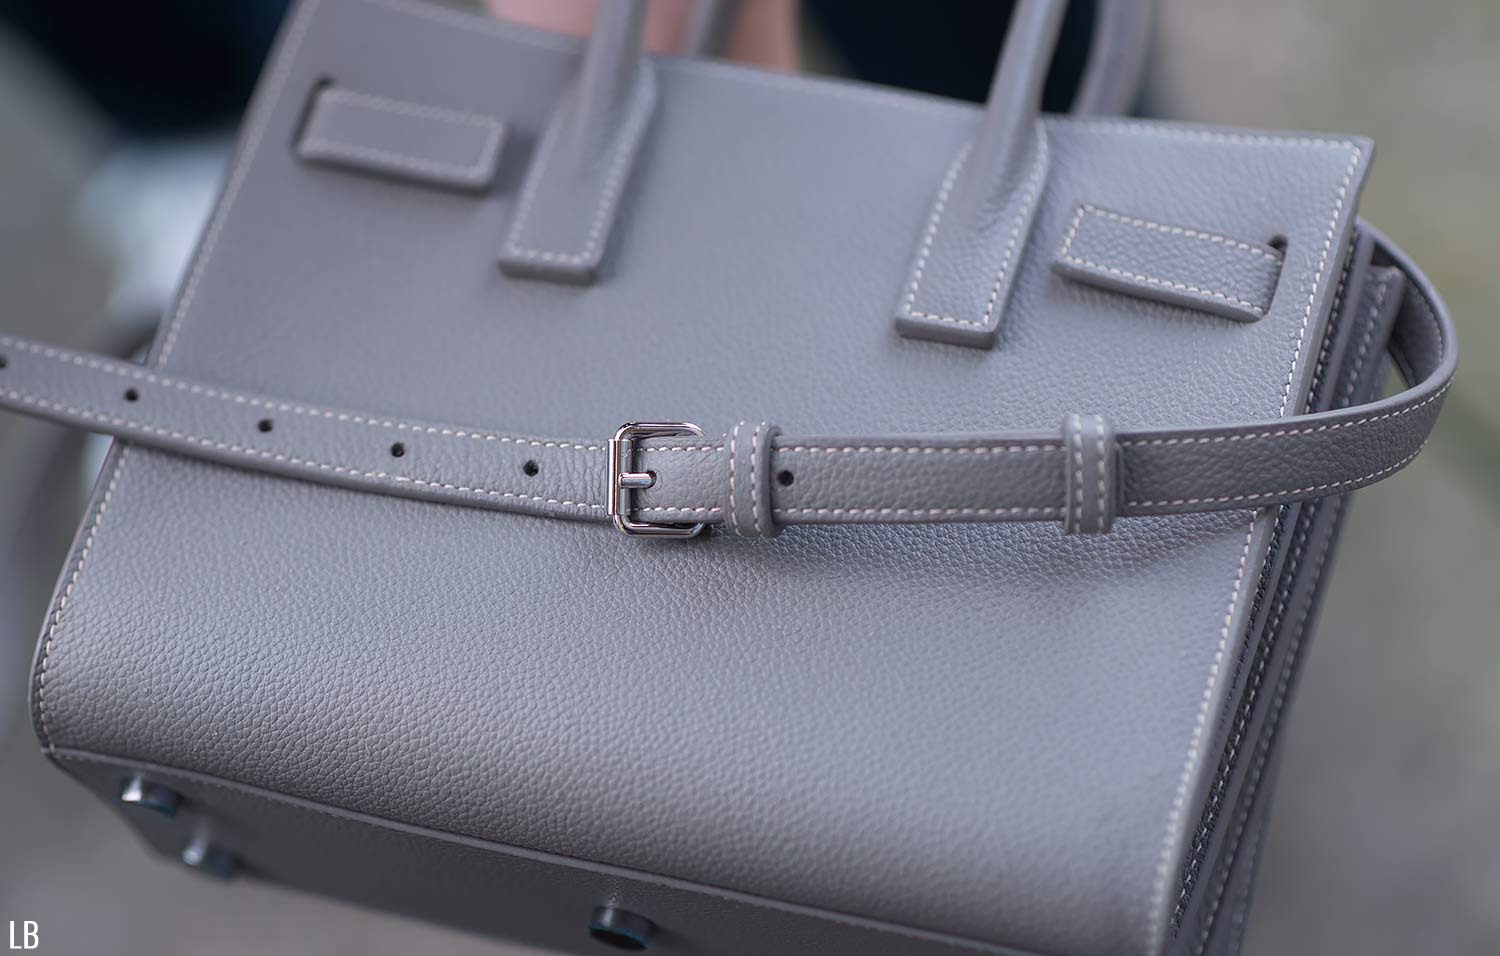 098efb6c39ca5 ... but in a muted and understated way. It s a gorgeously designed bag with  fantastic details on it